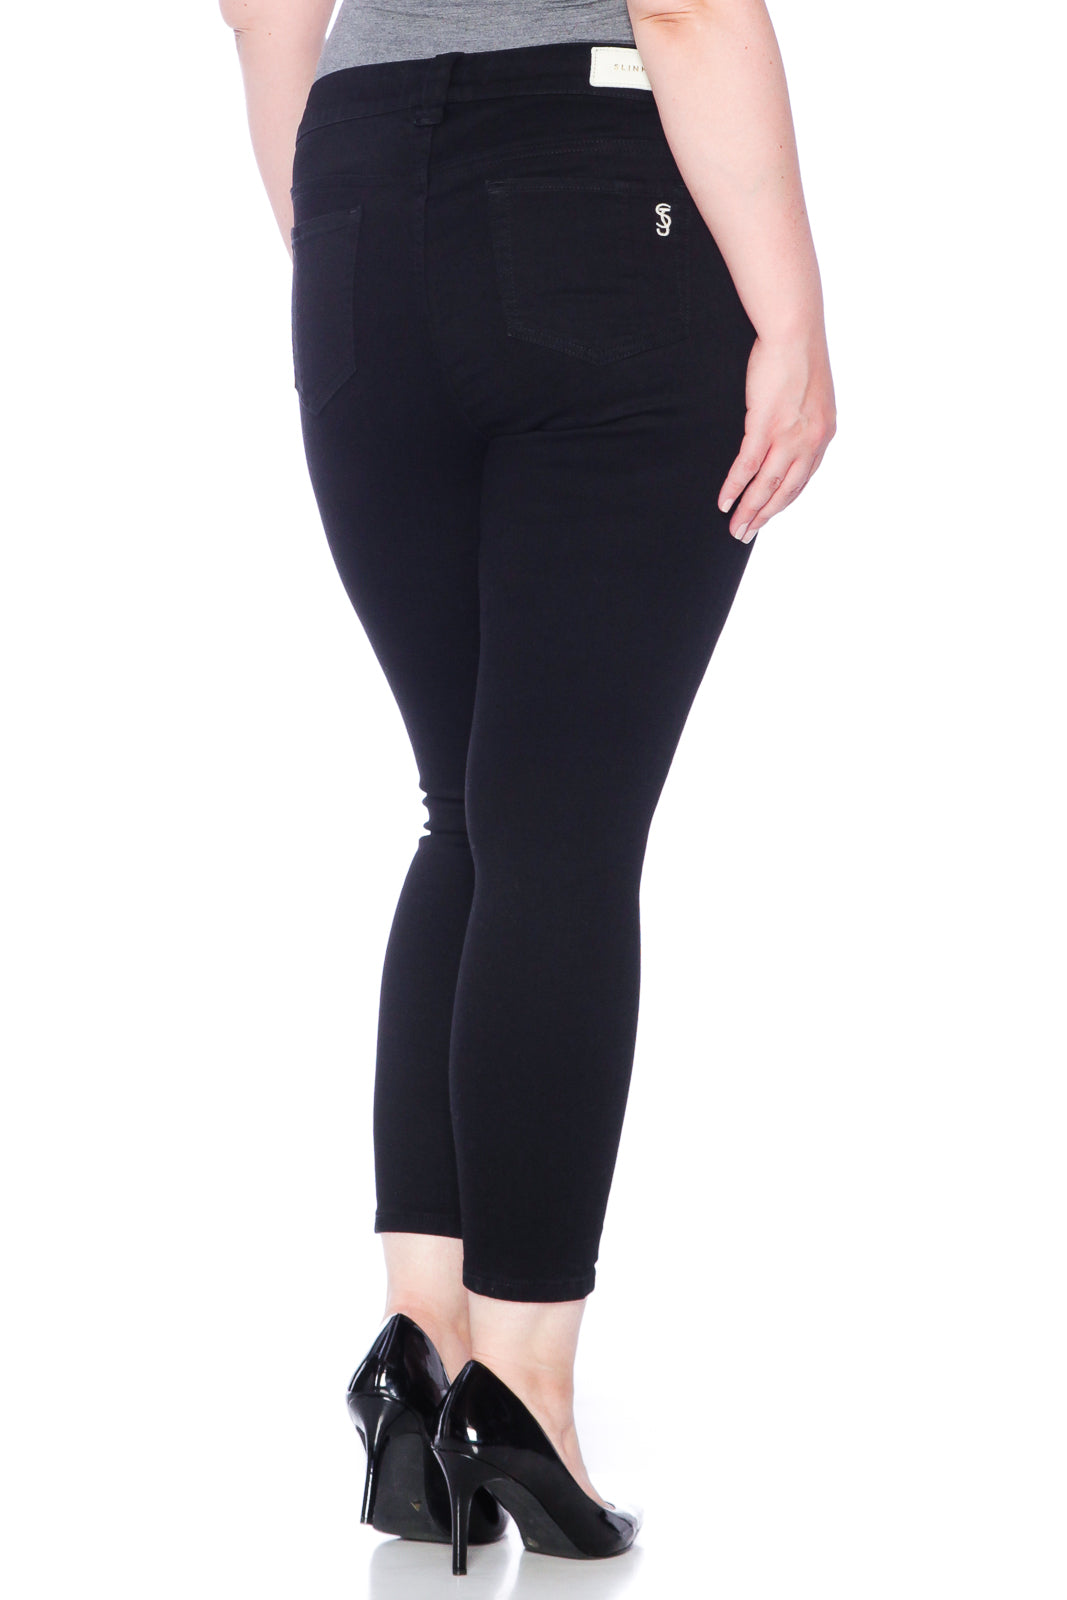 The High Waist Ankle Jegging - SOLID BLACK